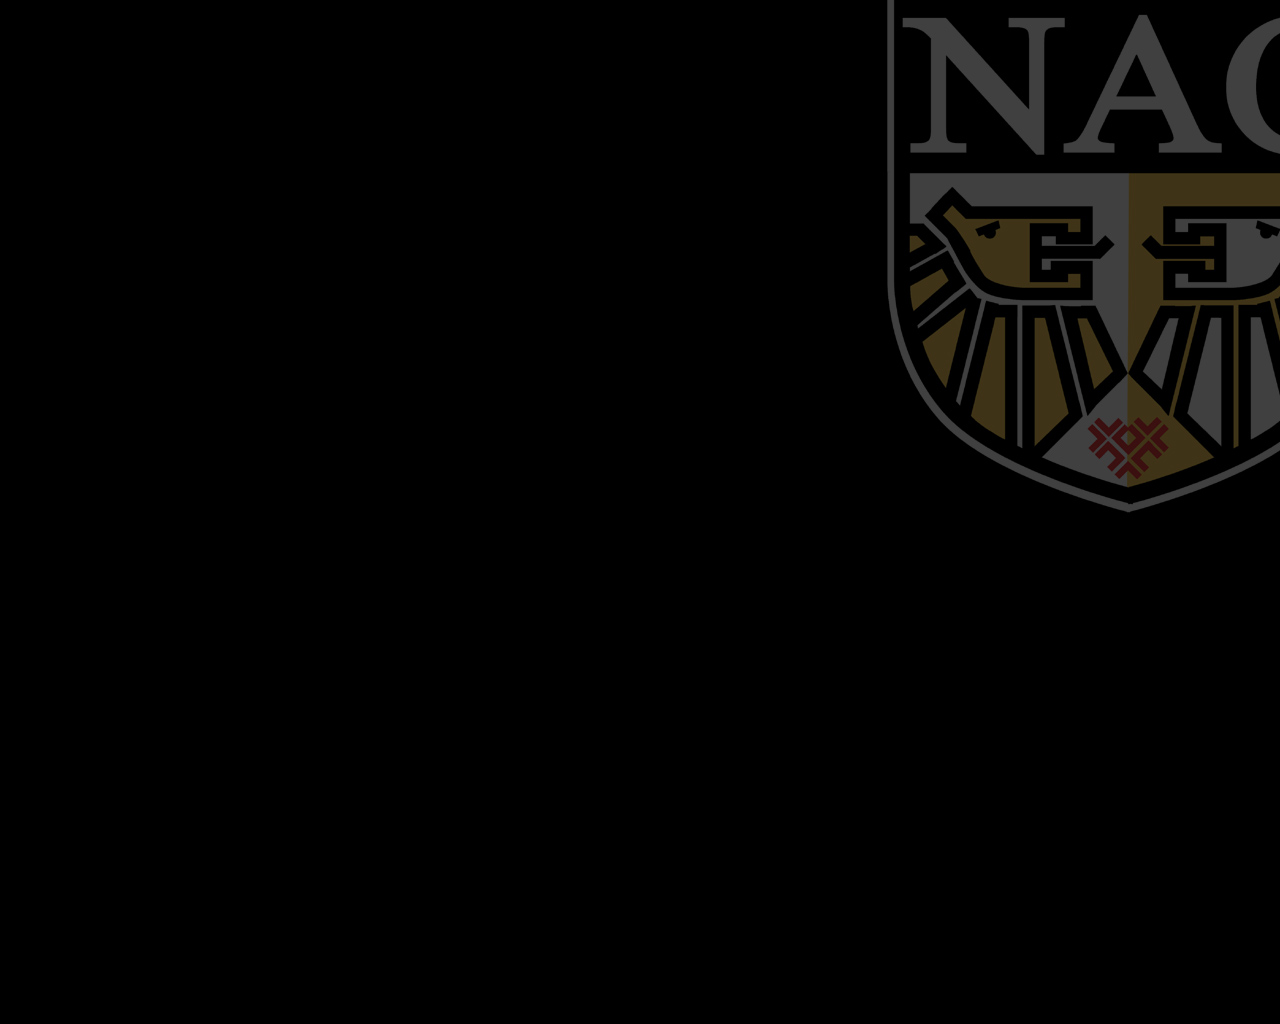 Best 54 NAC Breda Wallpaper on HipWallpaper NAC Breda Wallpaper 1280x1024